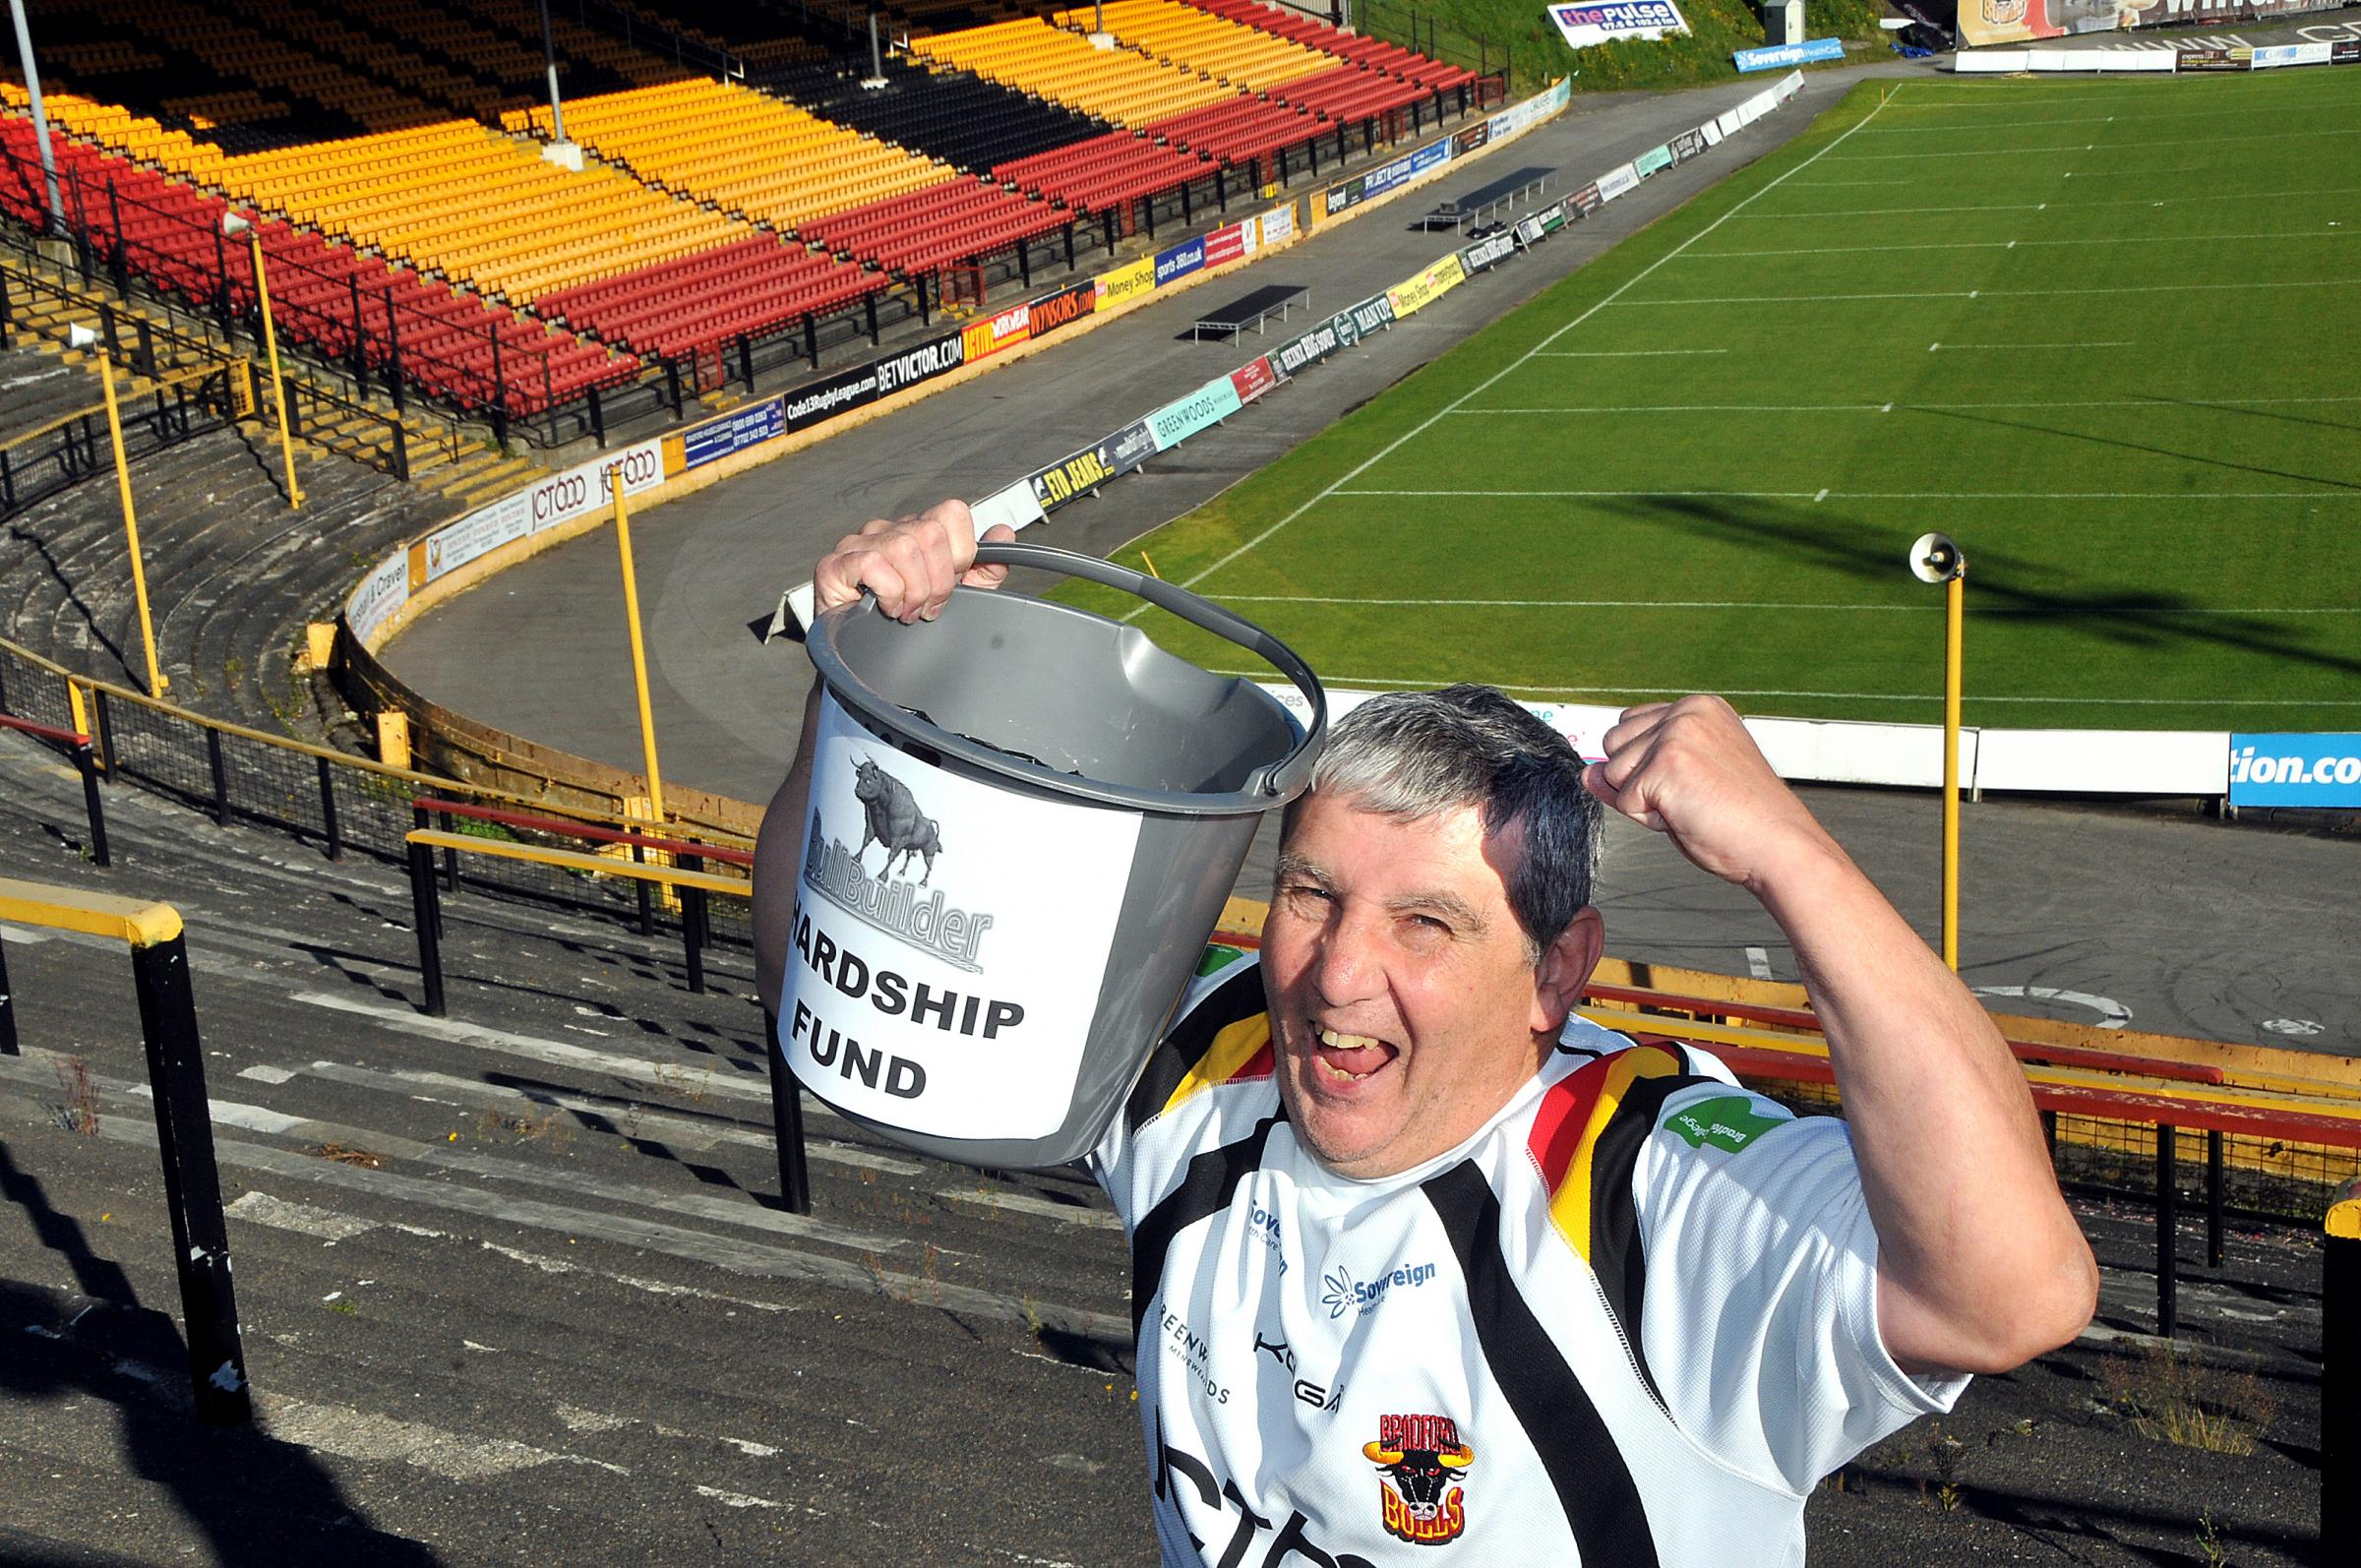 Paul Butterworth helped to collect money for BullBuilder's hardship fund, which was a huge success